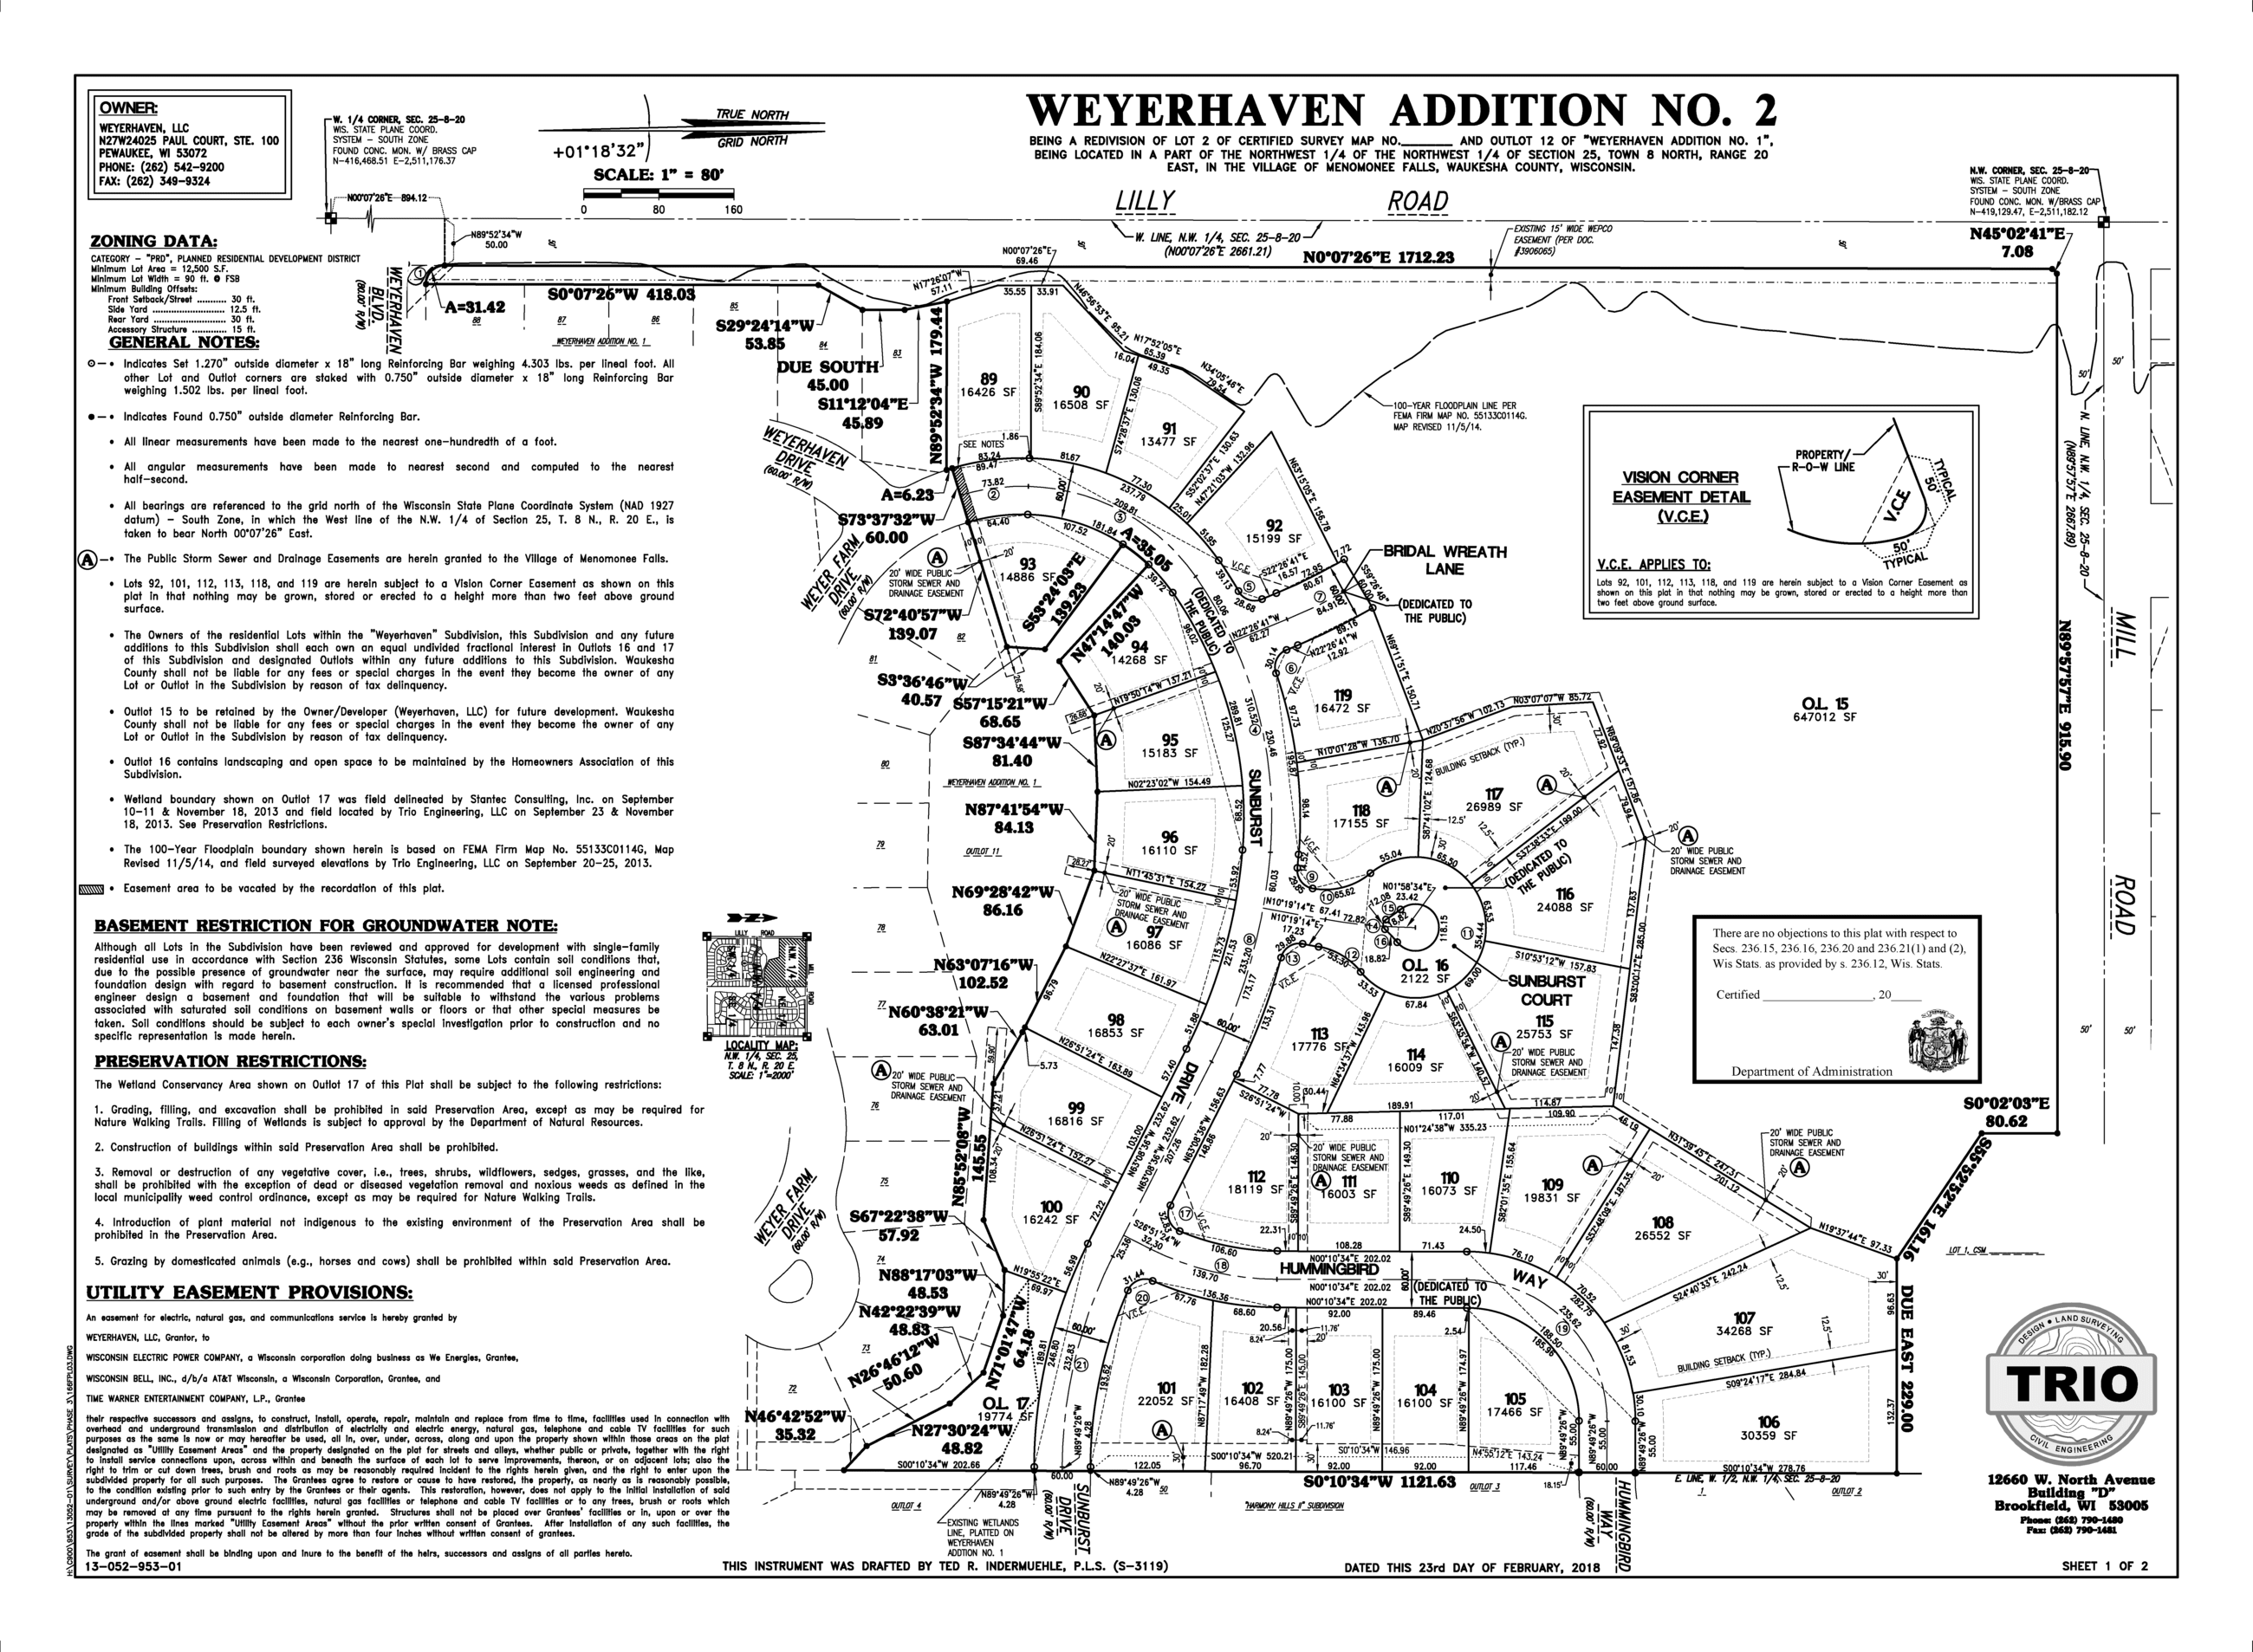 Weyerhaven Addition 2 Subdivision Map